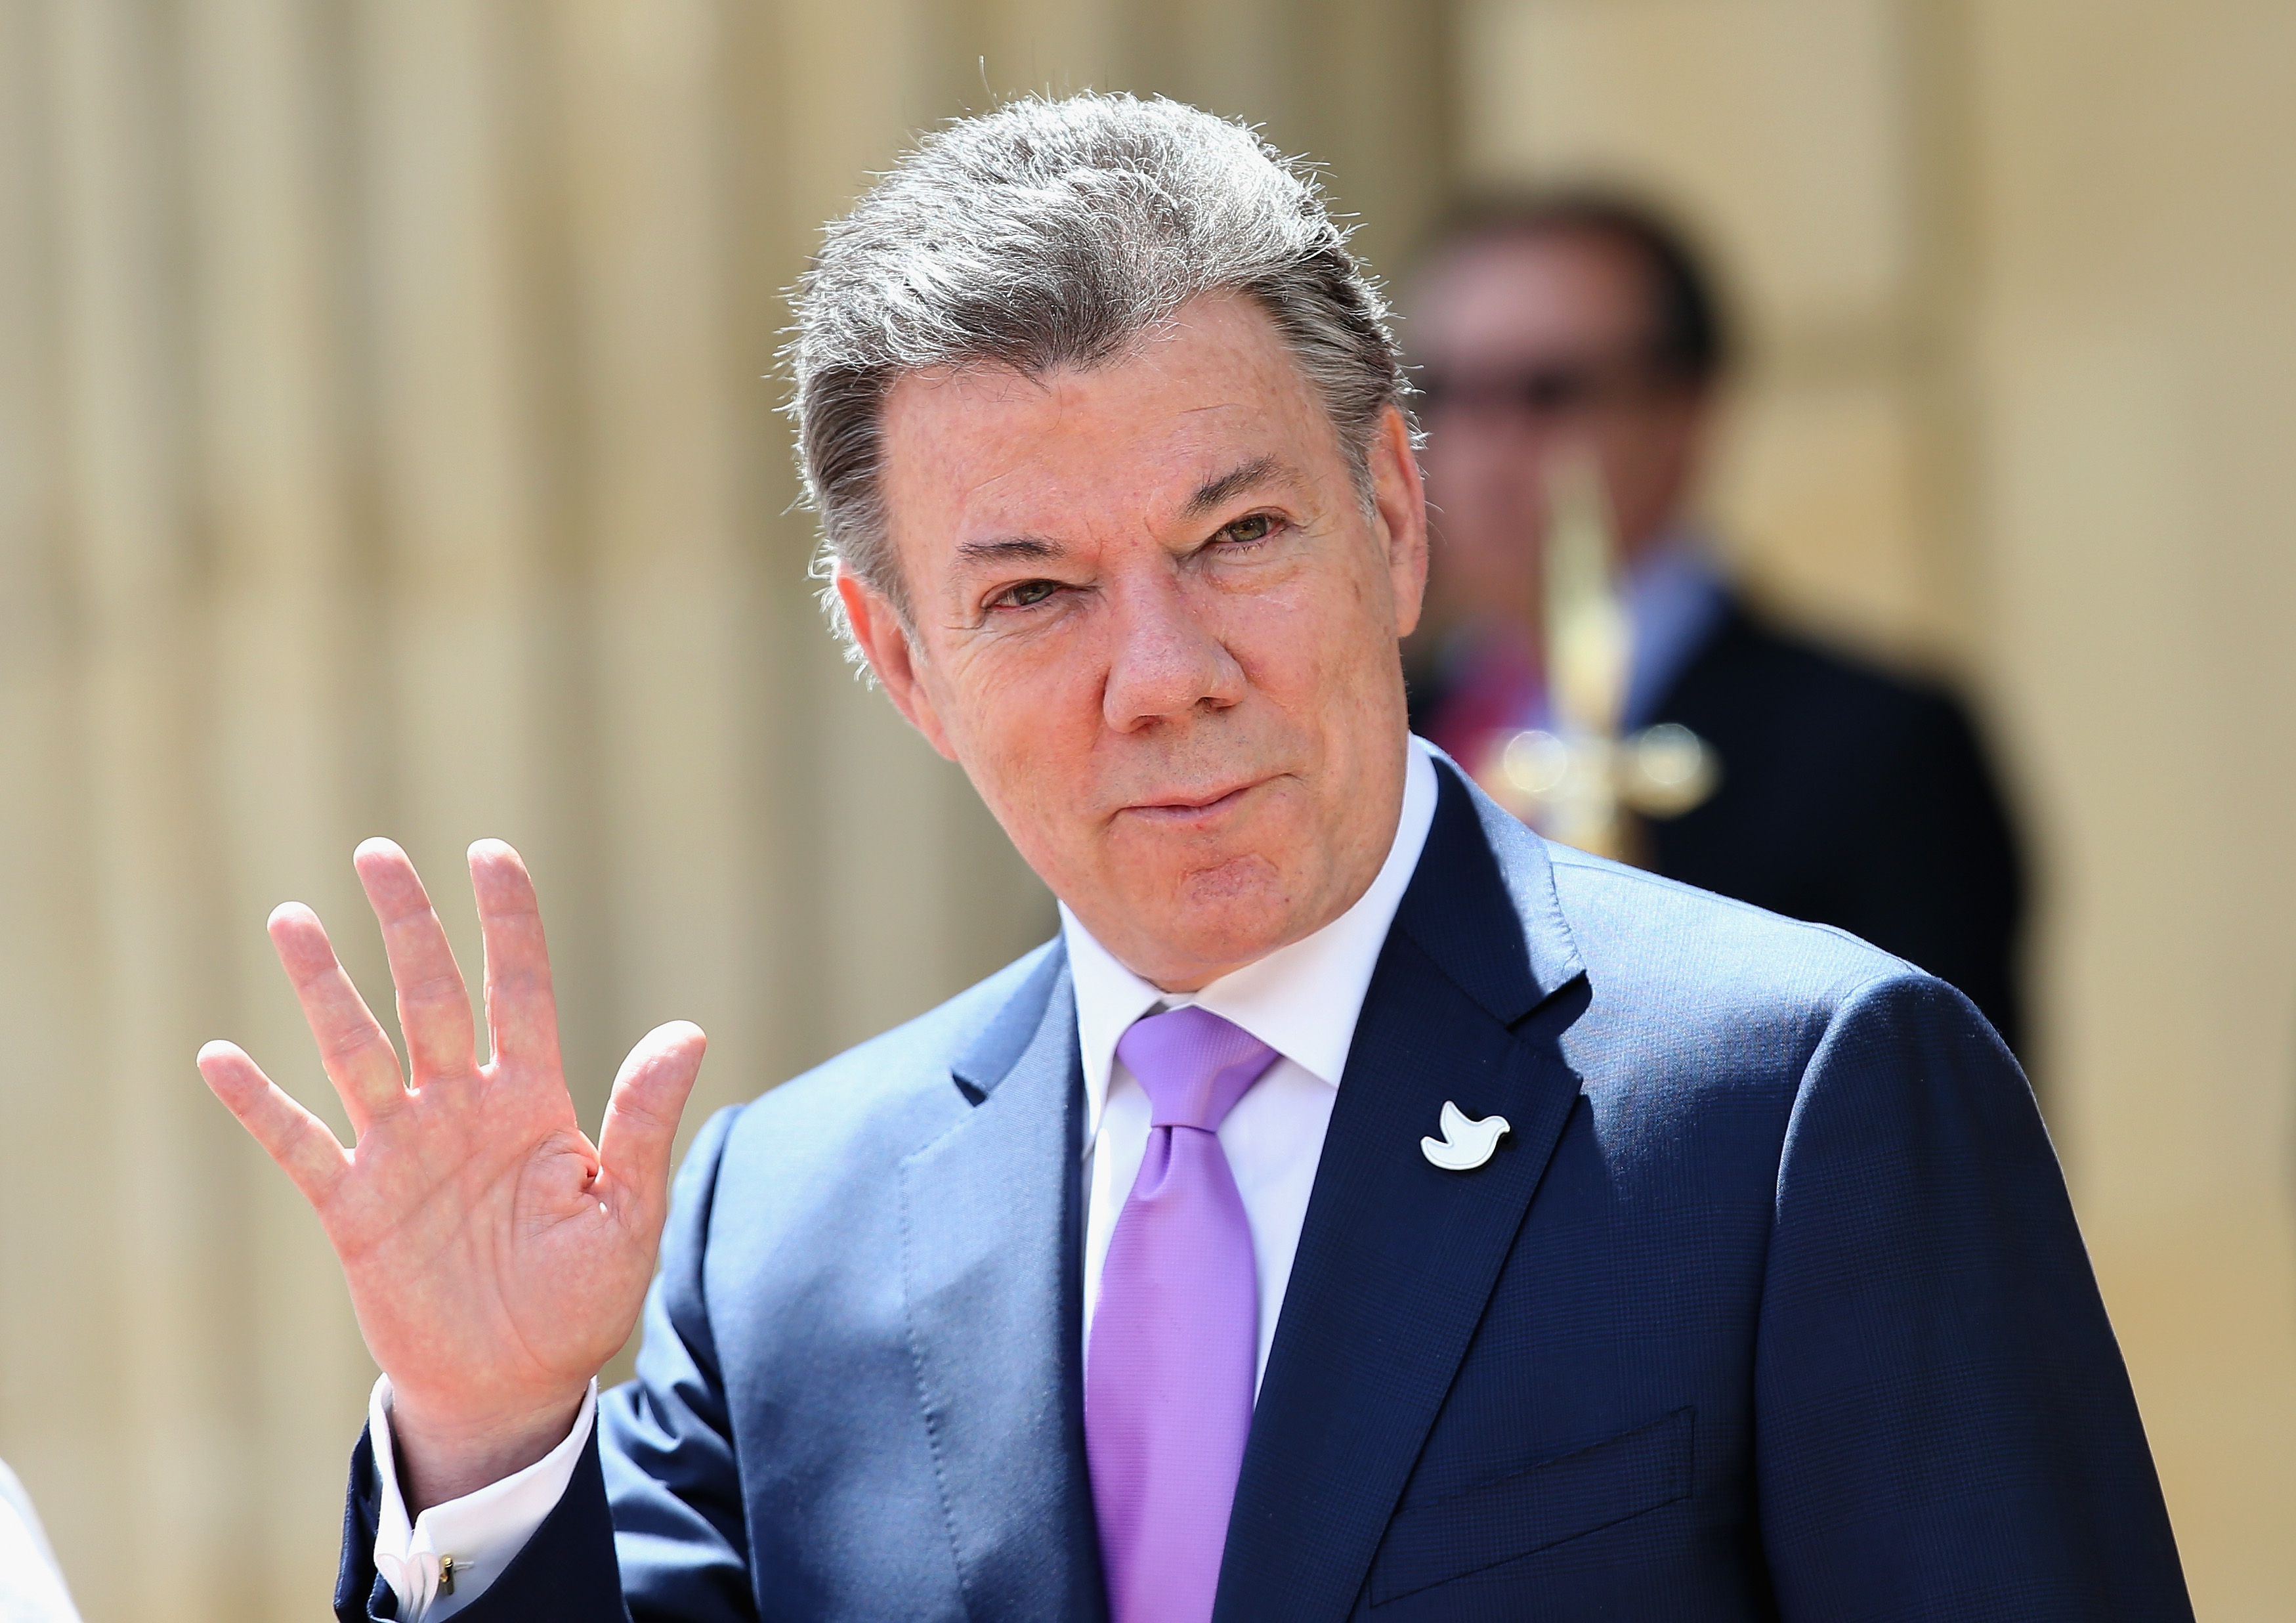 President of Colombia Juan Manuel Santos at the Presidential Palace for an Official Welcome in Bogota, Colombia, on Oct. 29, 2014.